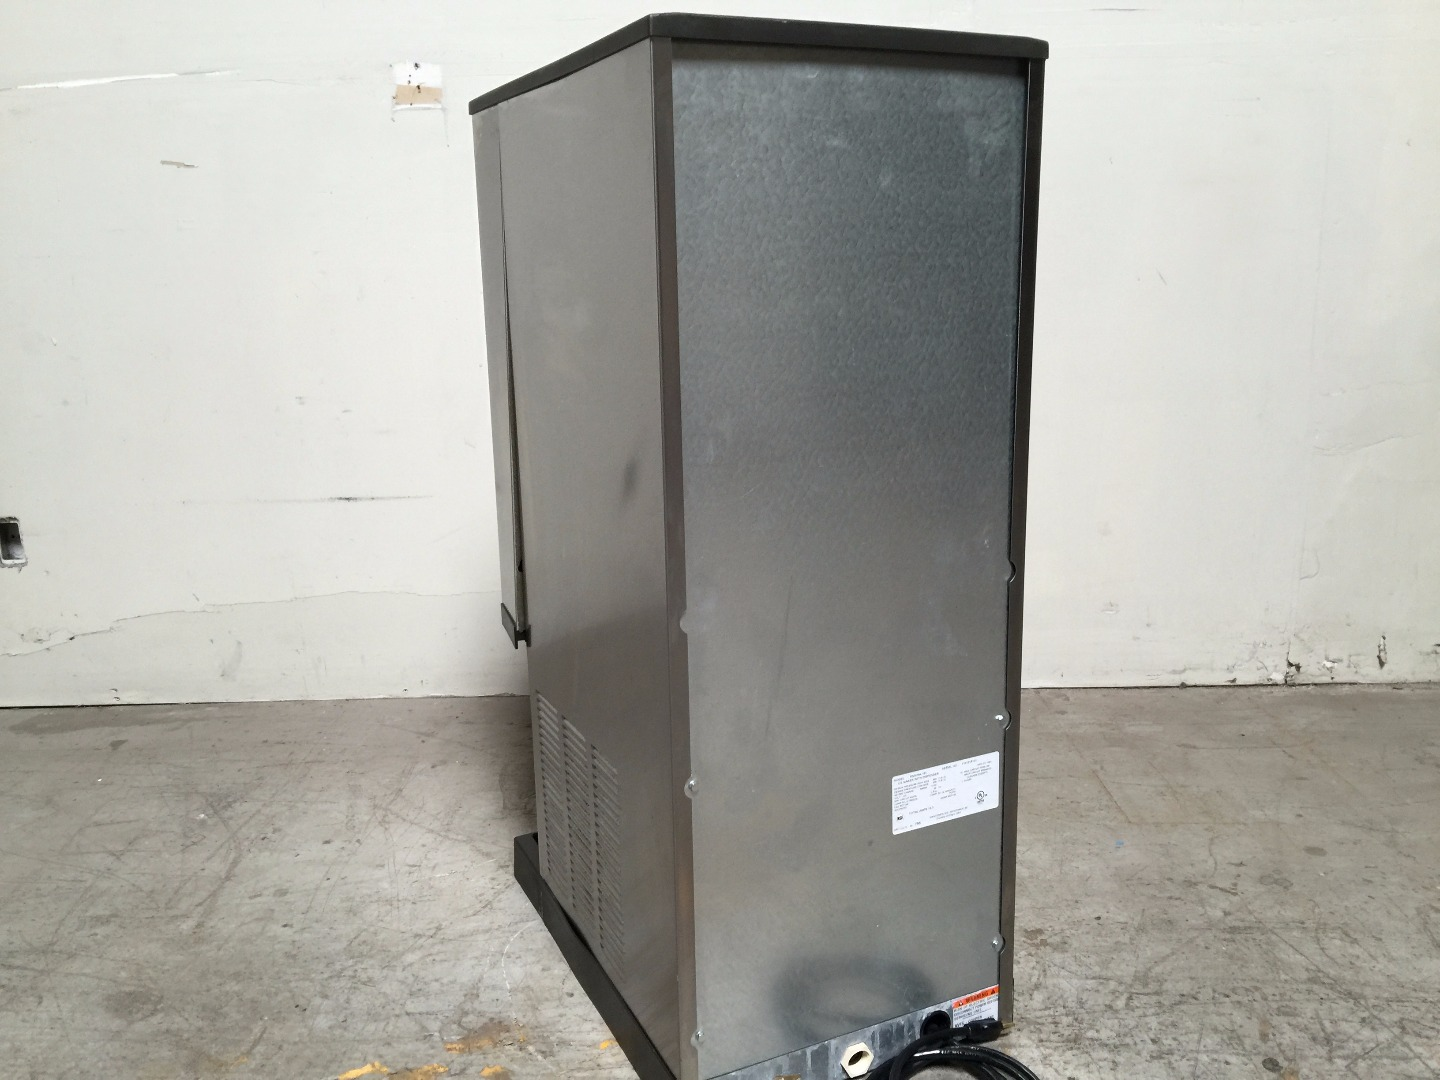 Countertop Nugget Ice Maker : ... 2013 RNS-20A-161 Countertop Nugget Ice Maker W/ Water Dispenser